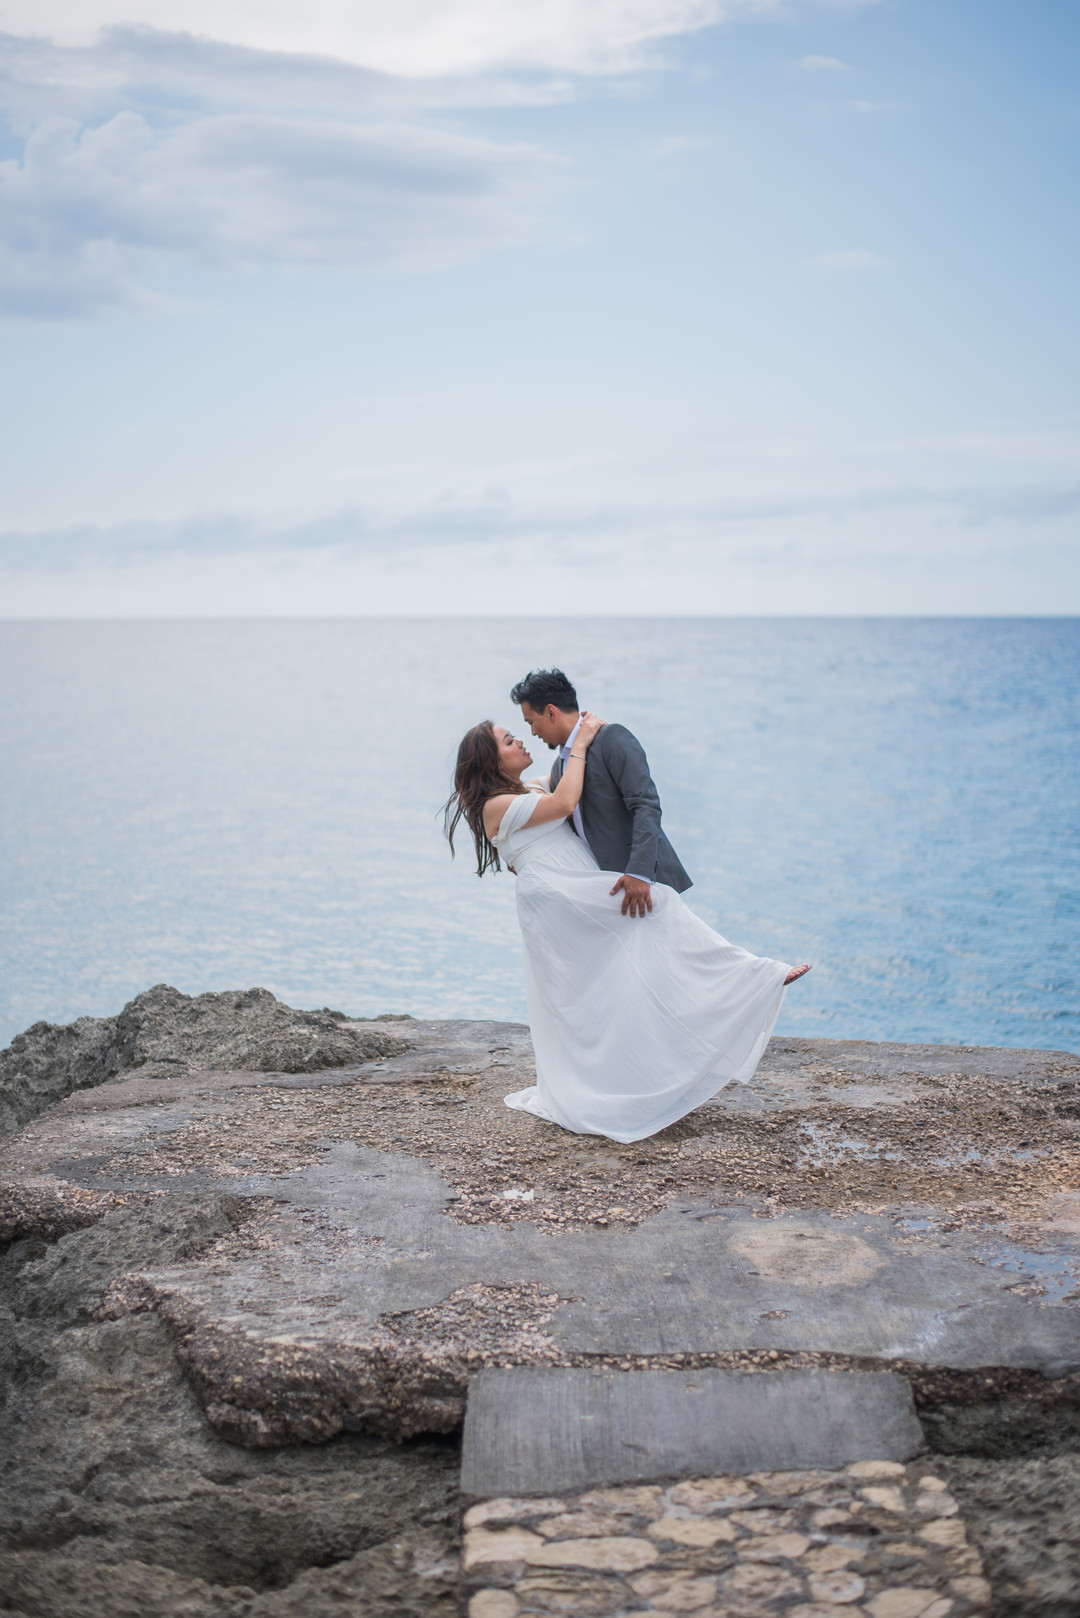 Exquisite Jamaican Engagement Adventure with Michelle & Yasmin Photography for Destination wedding blog www.adrianaweddings.com